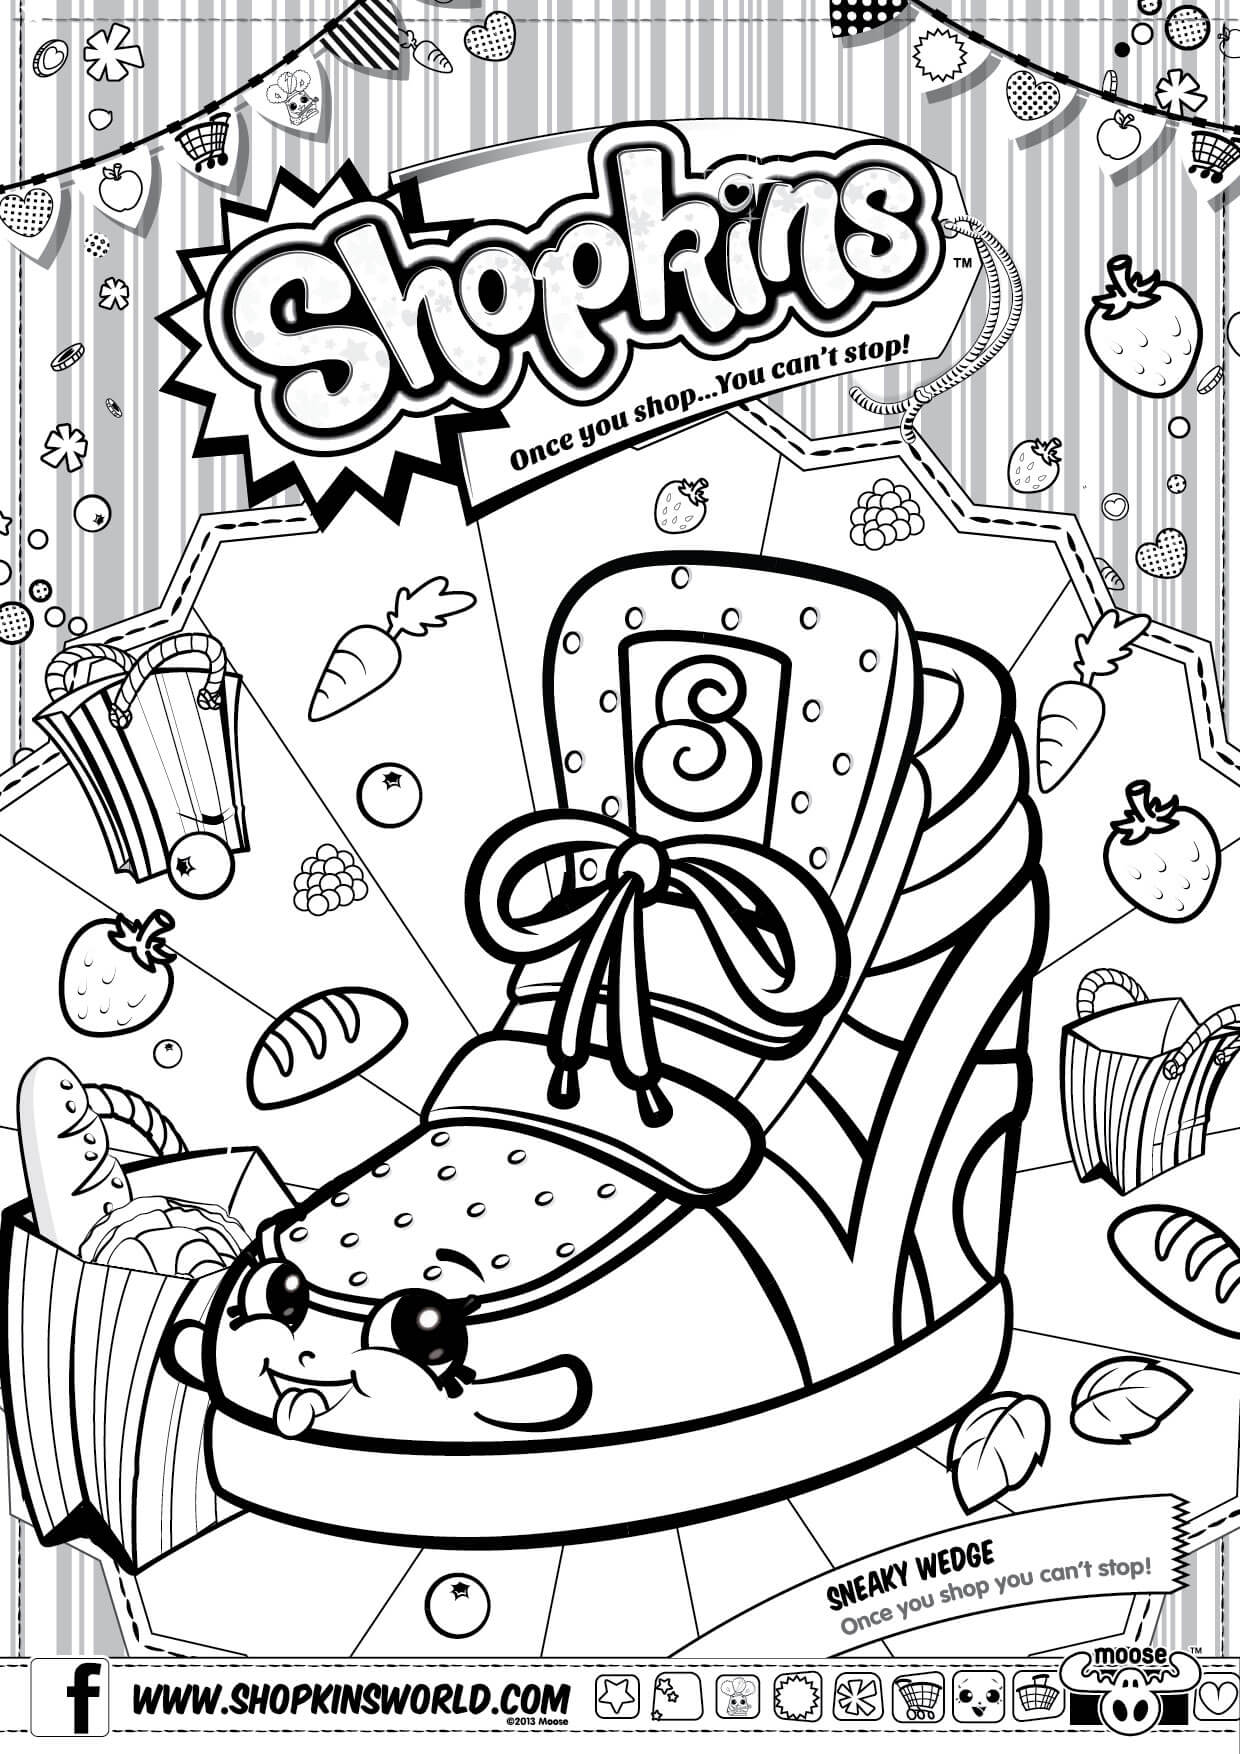 Shopkins coloring pages wishes - Shopkins Coloring Pages 1